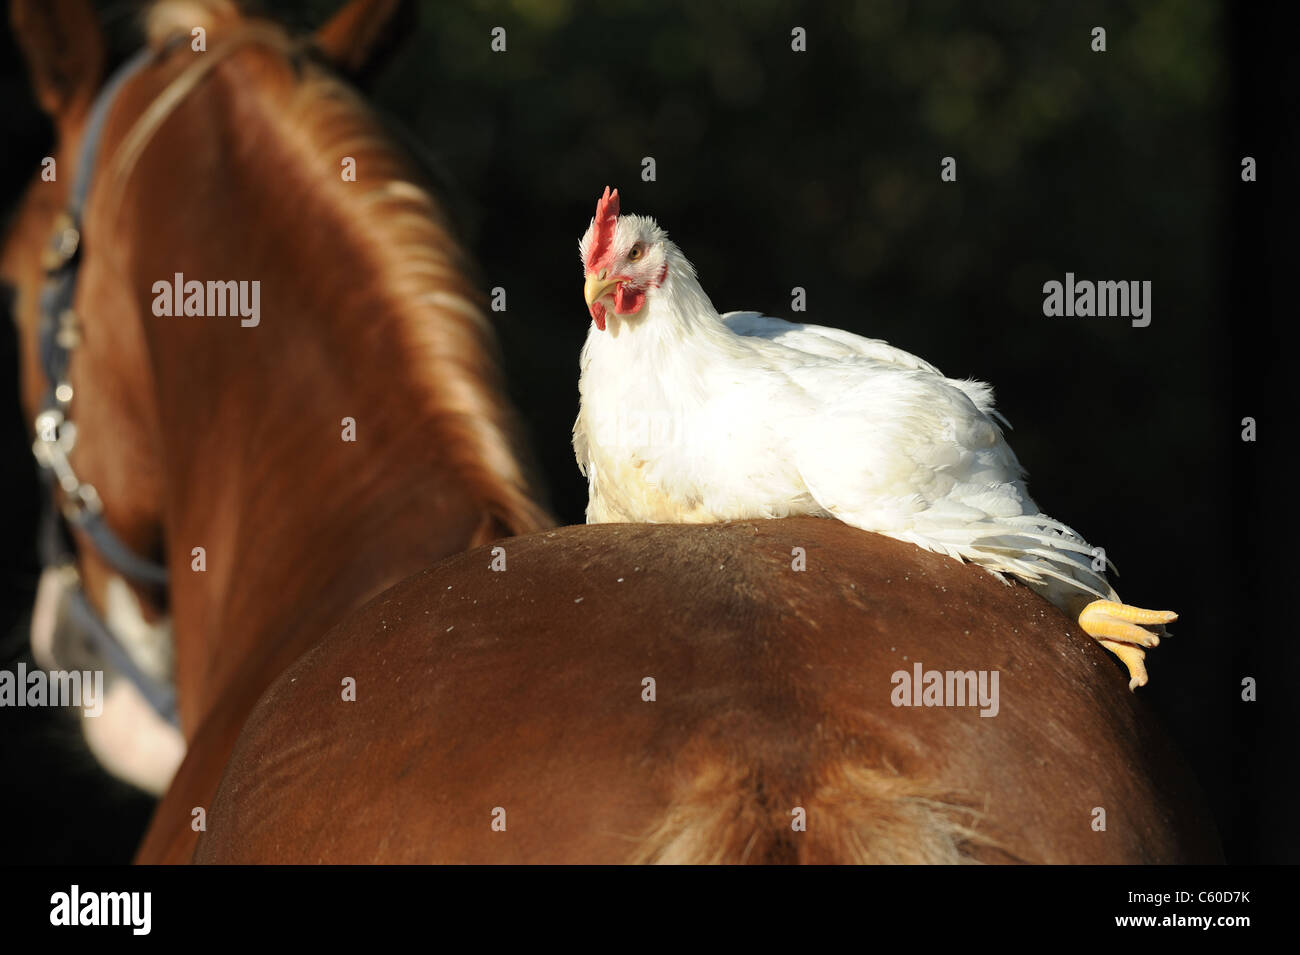 Poulet domestique (Gallus gallus domesticus) reposant sur un poney gallois. Photo Stock